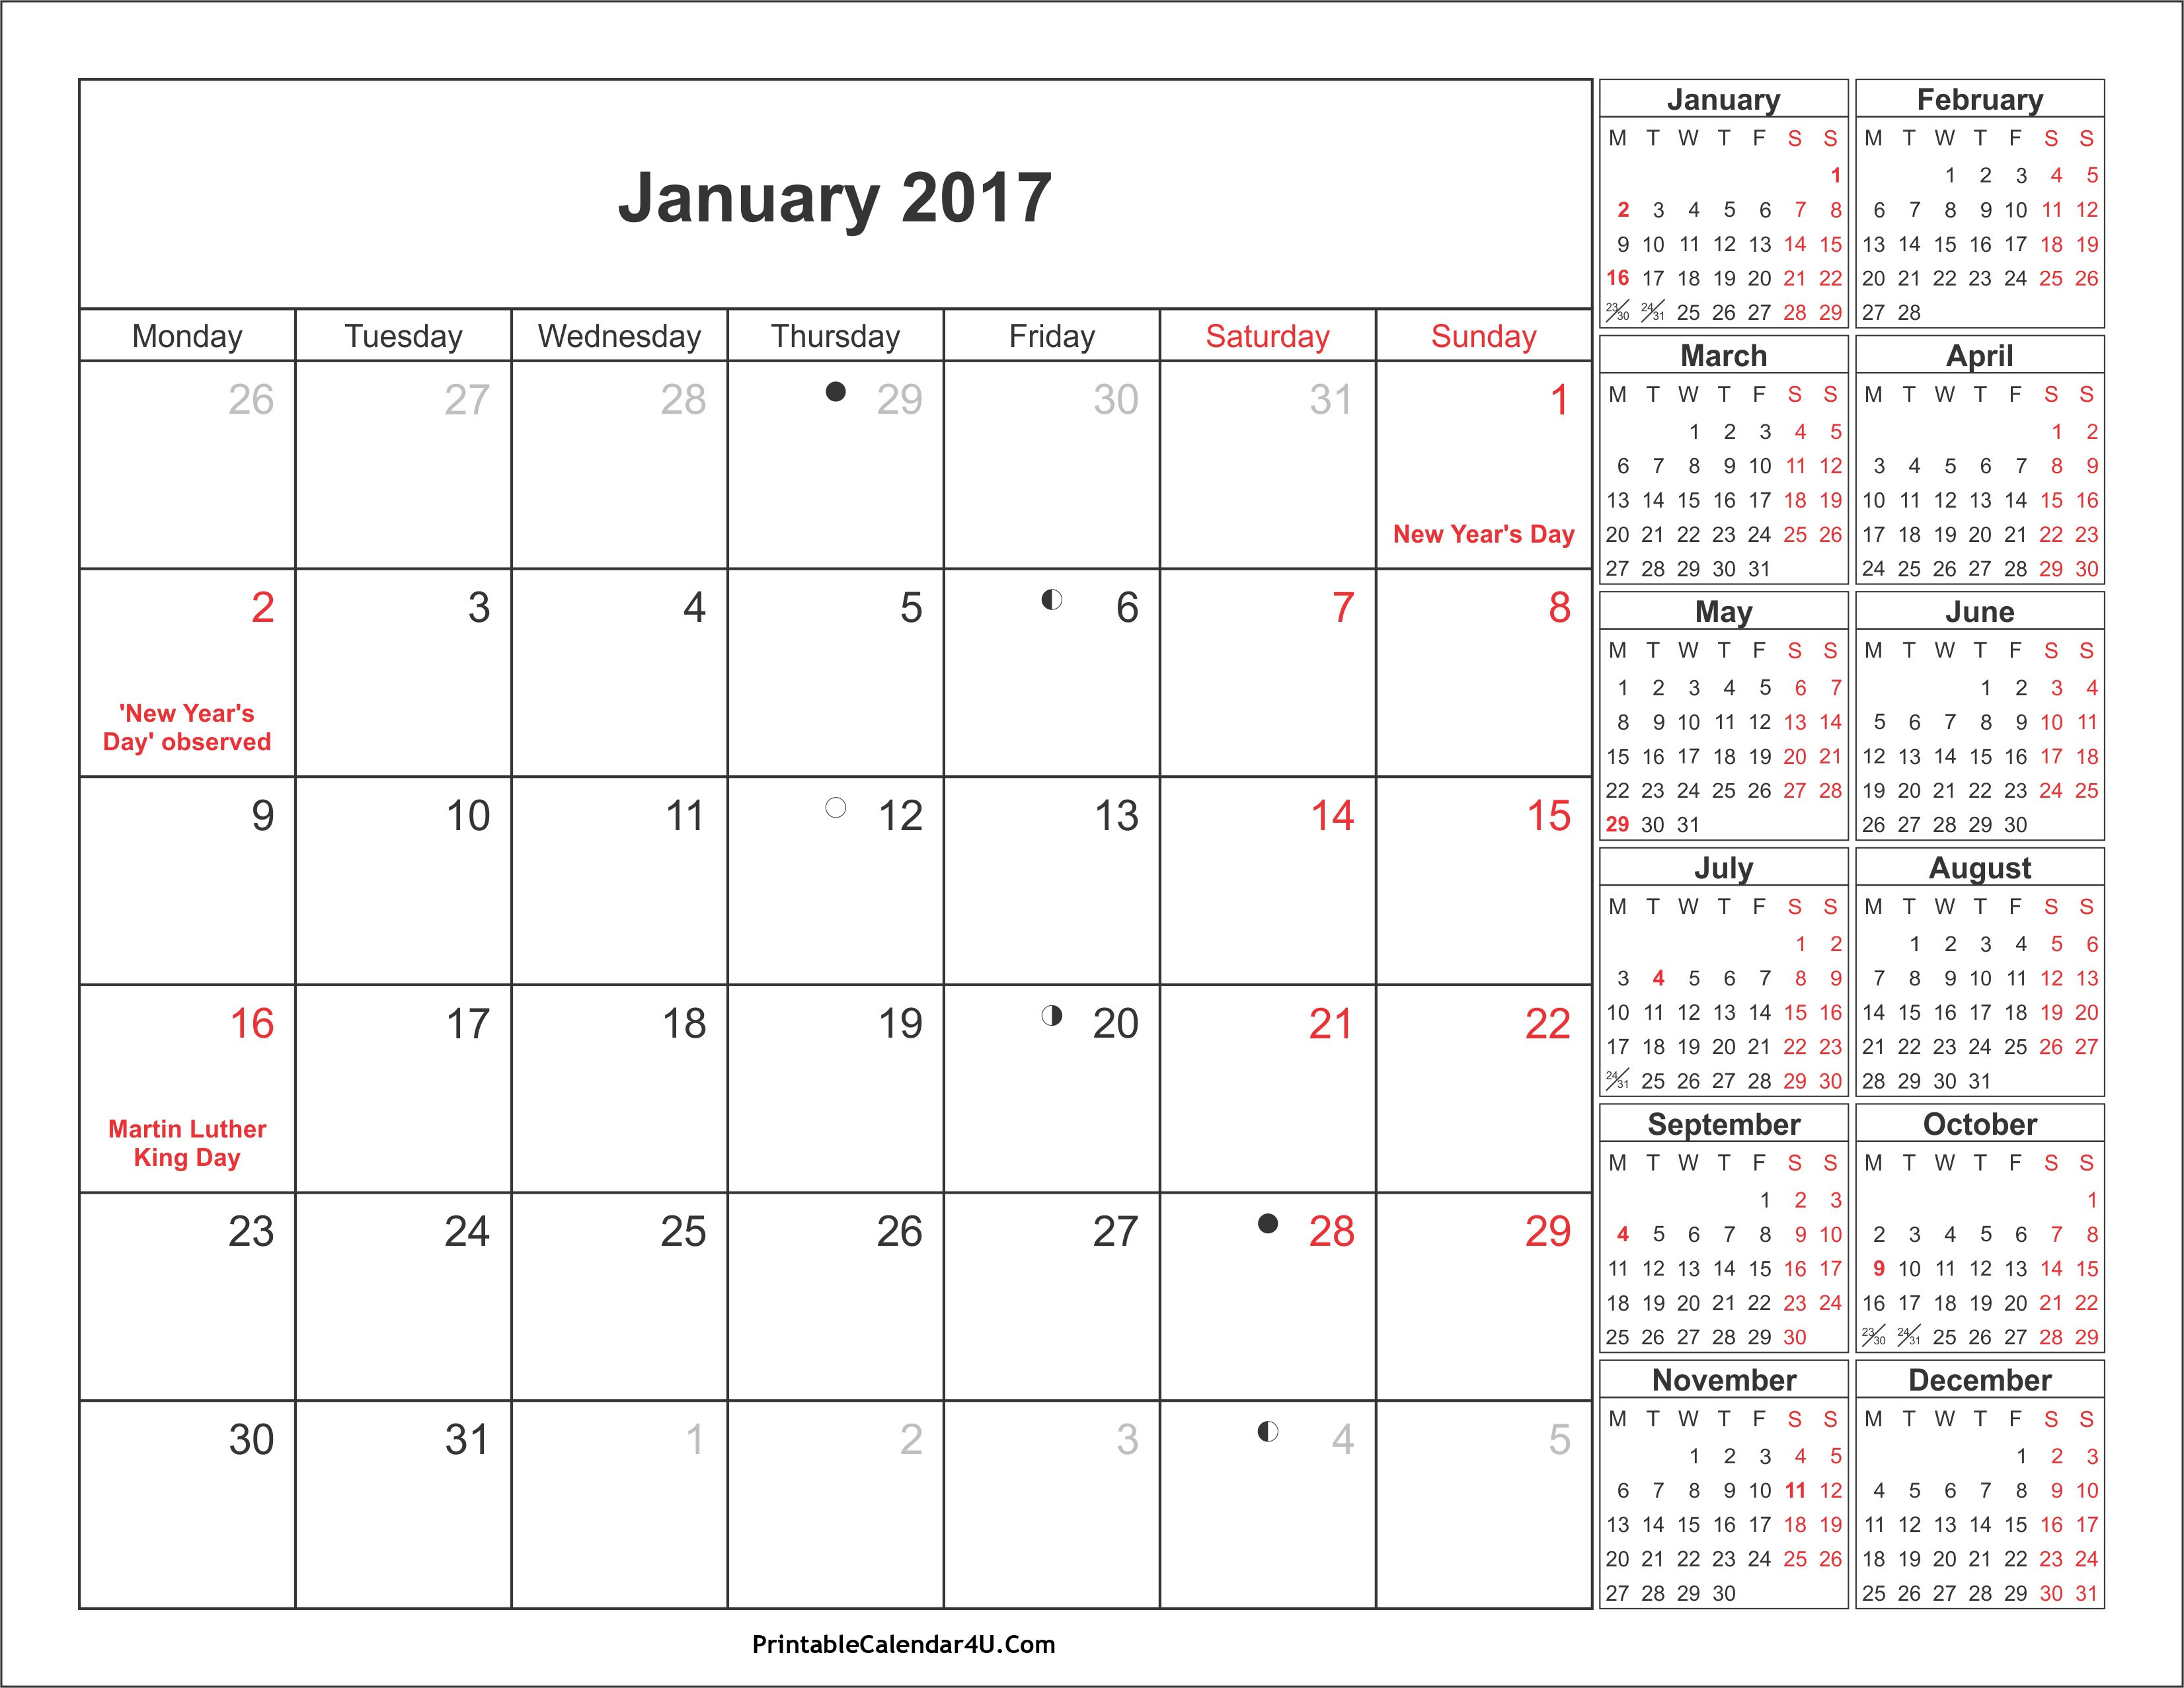 2019 Calendar Philippines Excel Más Caliente 2017 and 2018 Calendar with Holidays September 2019 Calendar with Of 2019 Calendar Philippines Excel Recientes 94 March April 2018 Calendar with Holidays Blank Calendar March